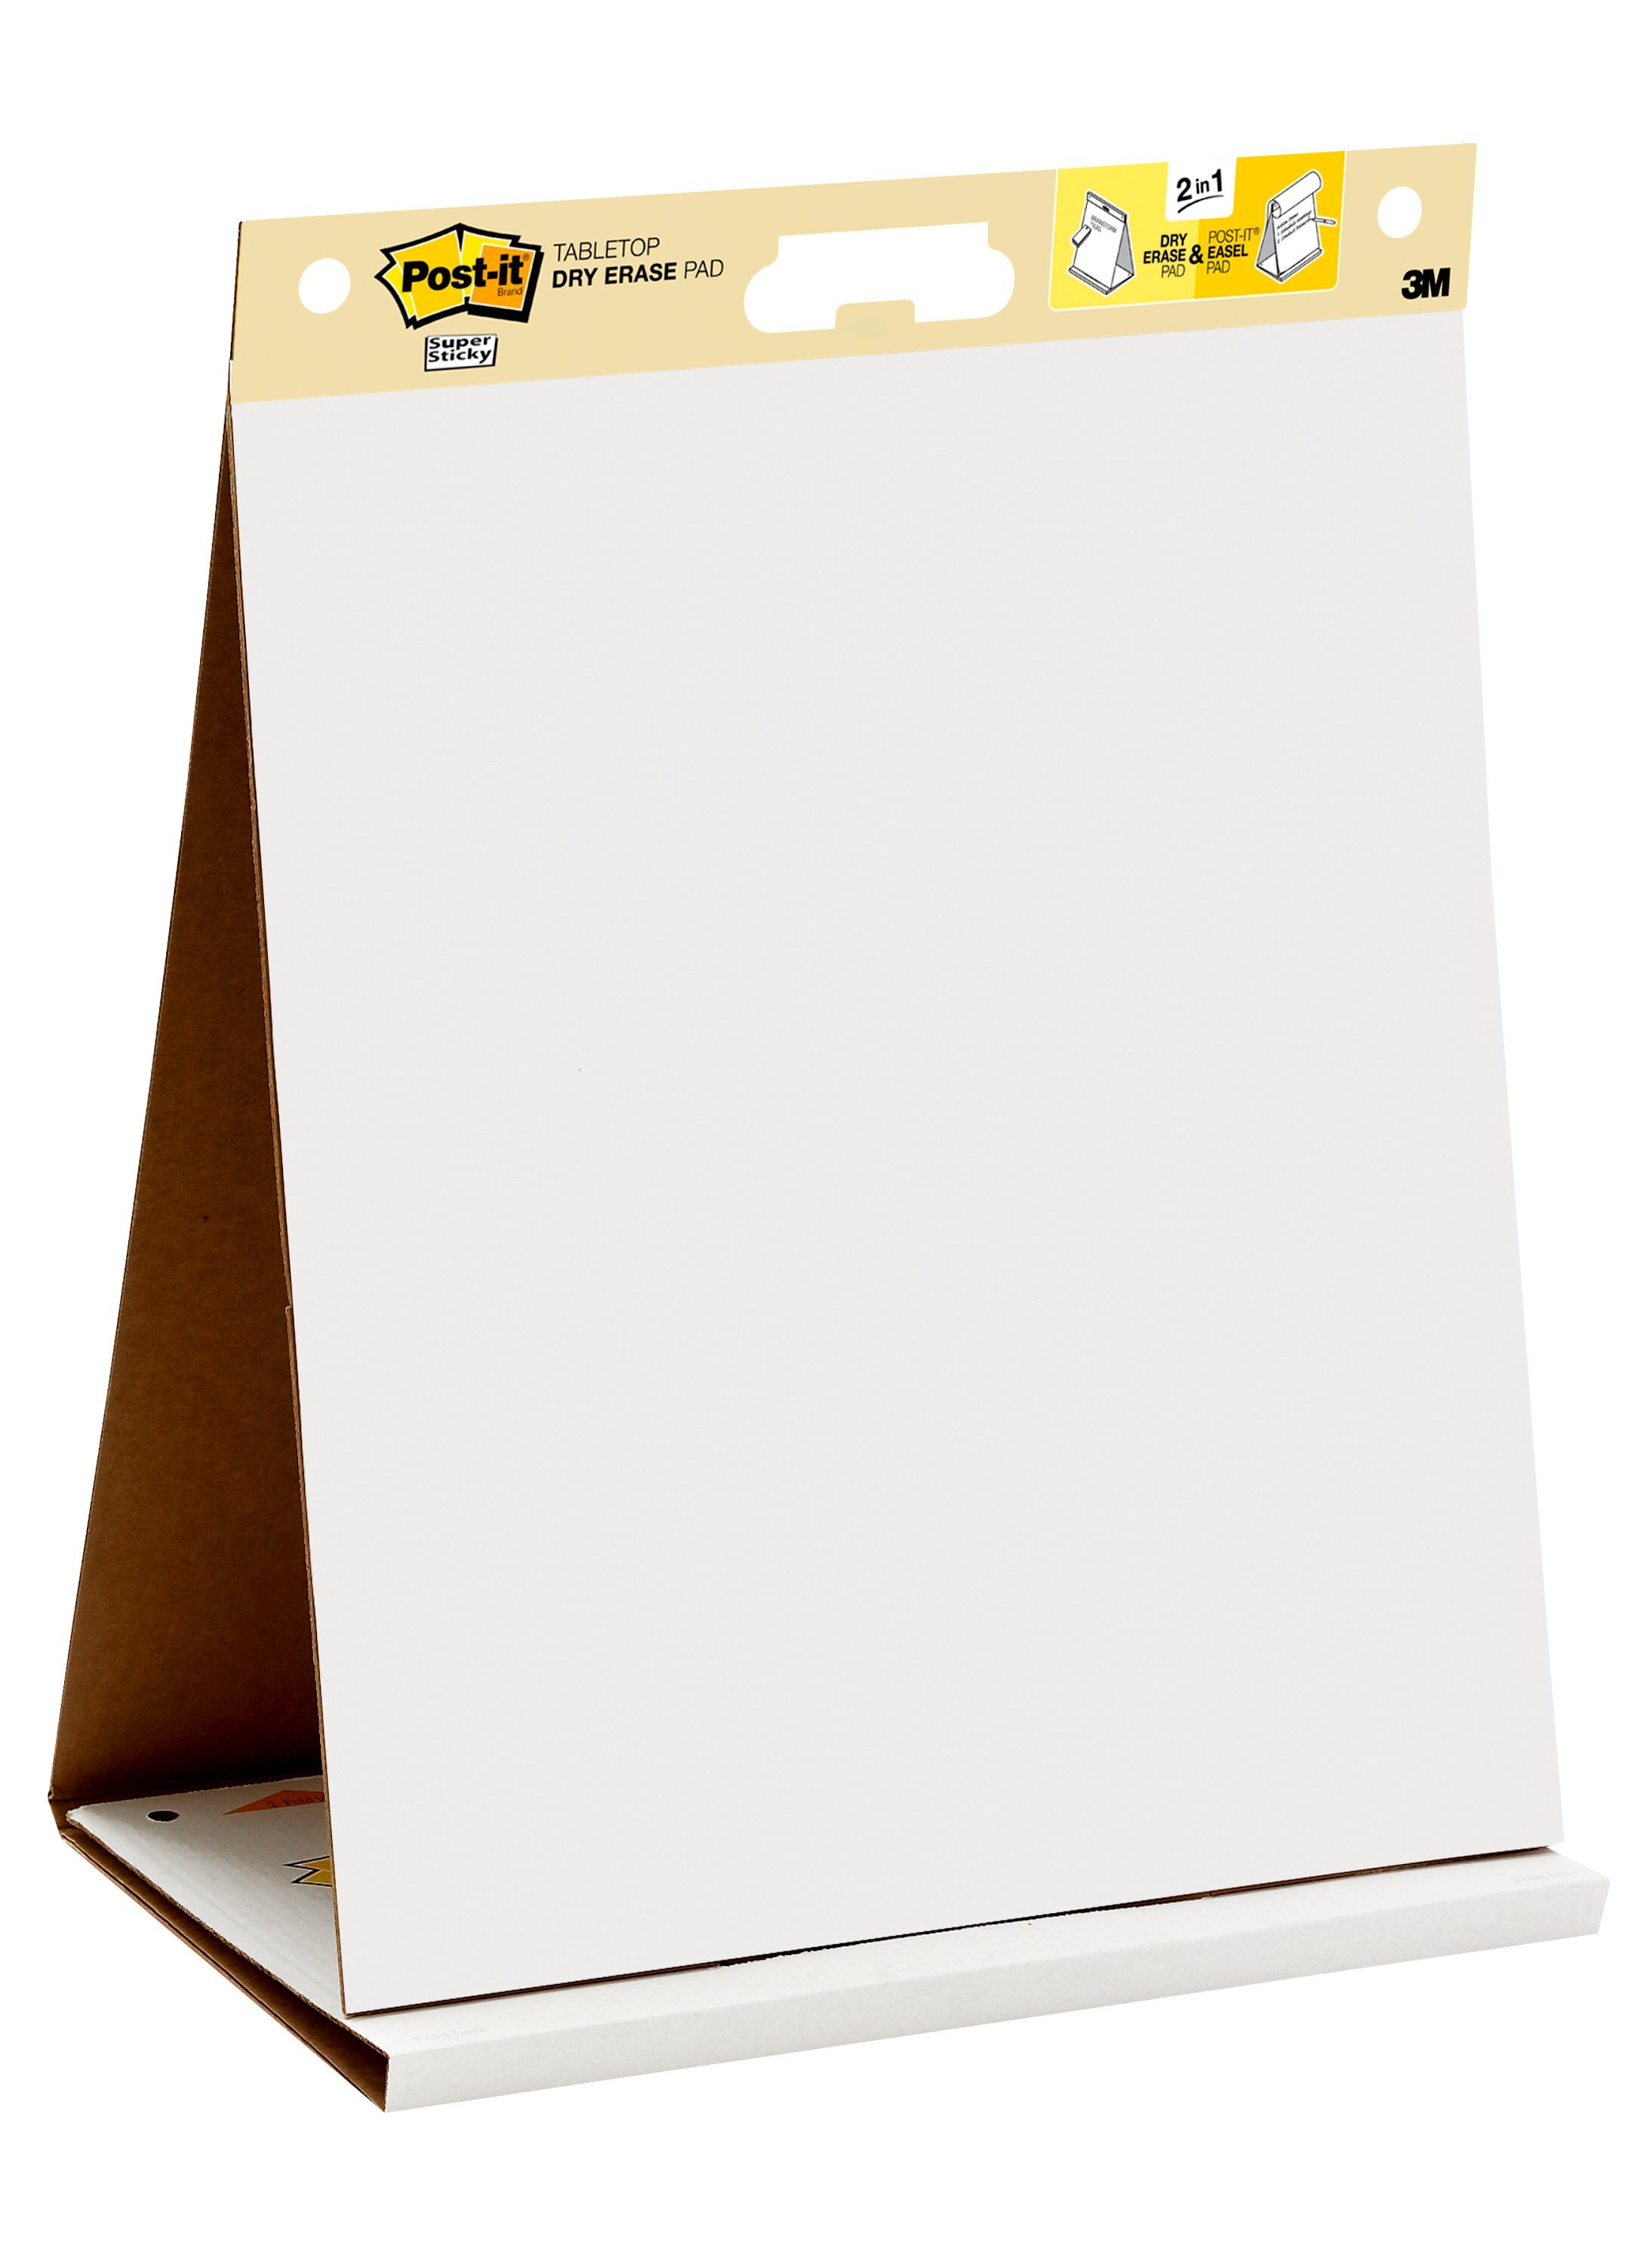 4 Pads//carton 20 X 23 Post-it Easel Pads Super Sticky 566 Self Stick Wall Easel Unruled Pad White 20 Sheets